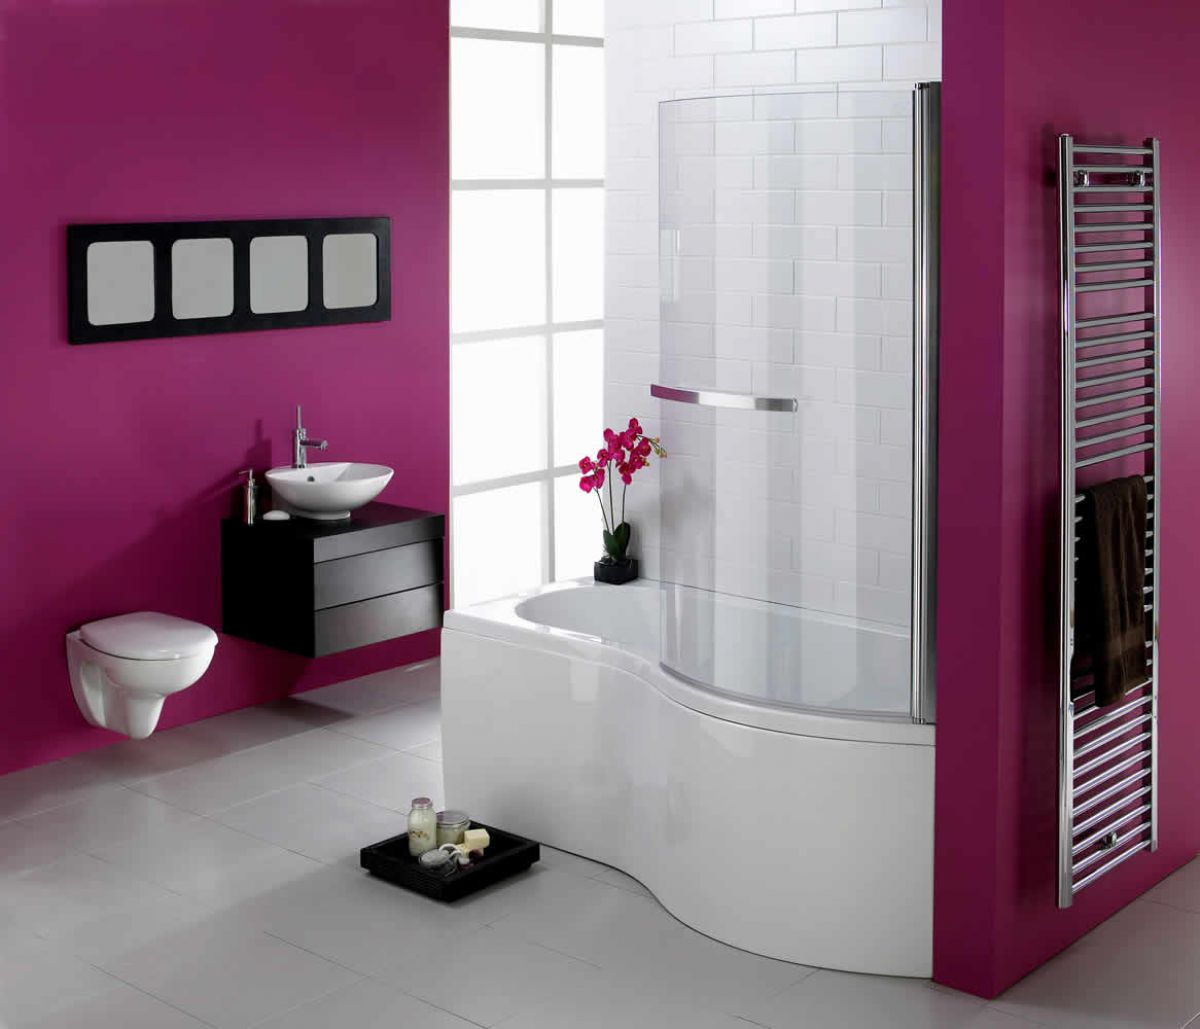 image example of a shower bath